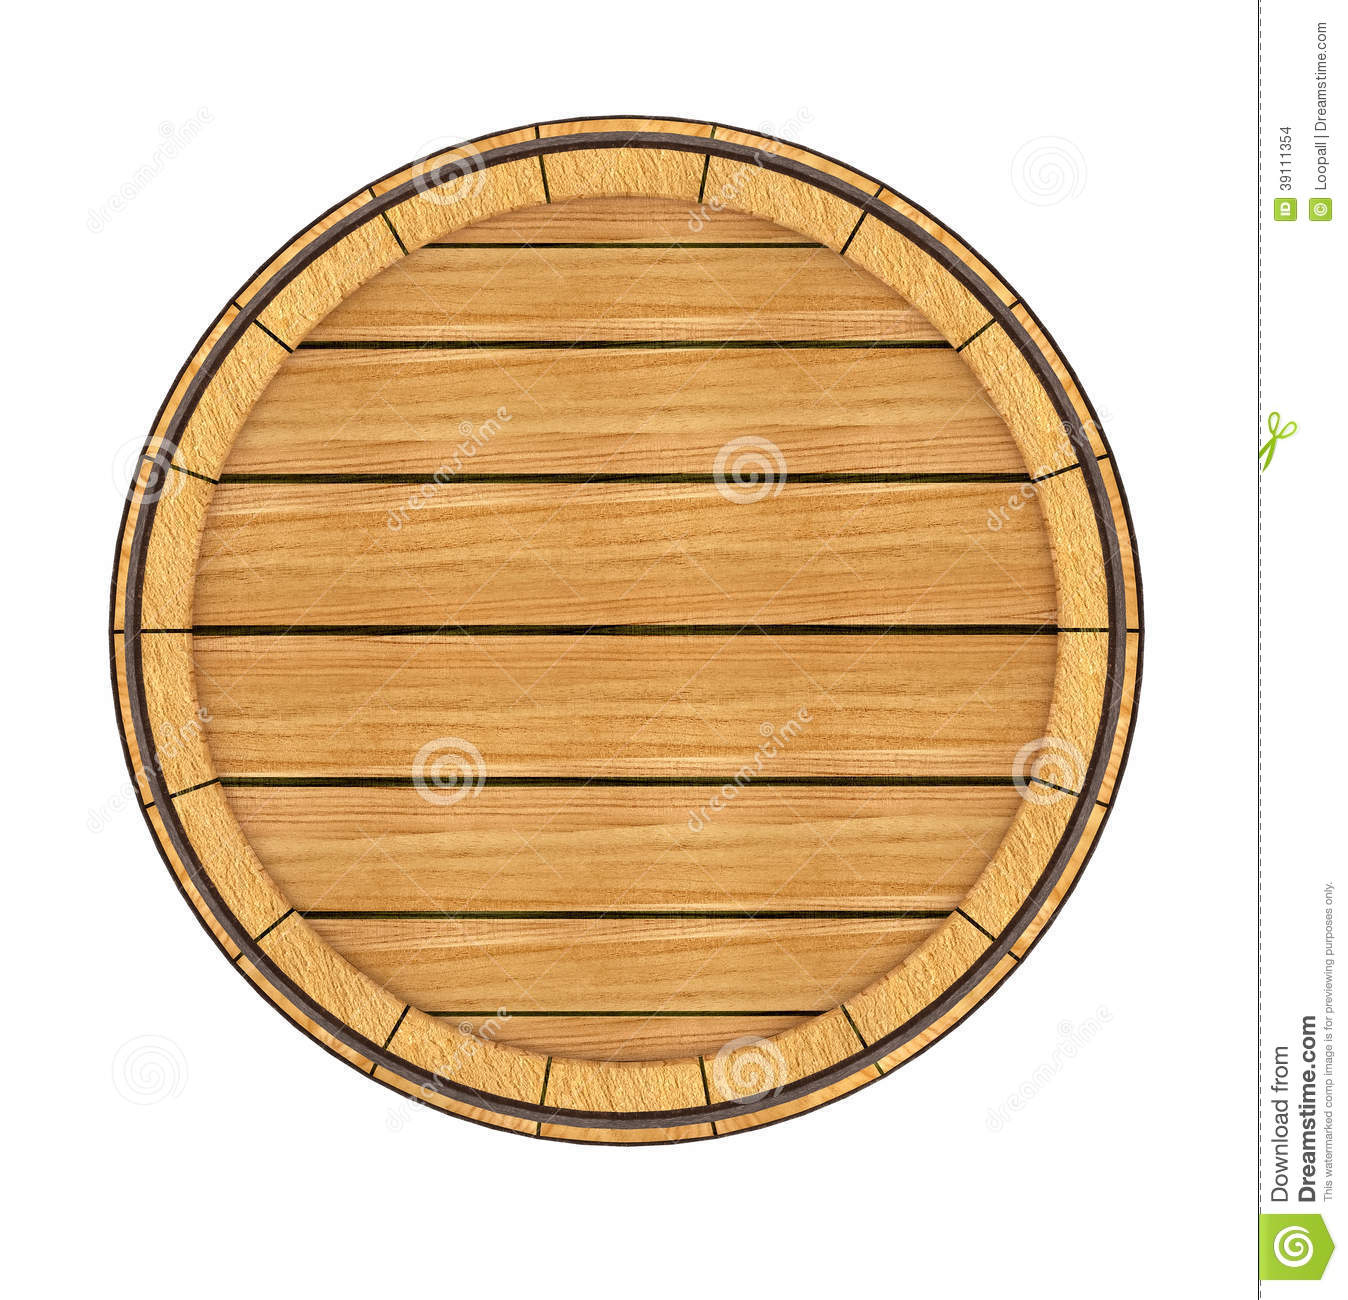 Wooden Barrel Top View 3d Rendered Illustration On White Background